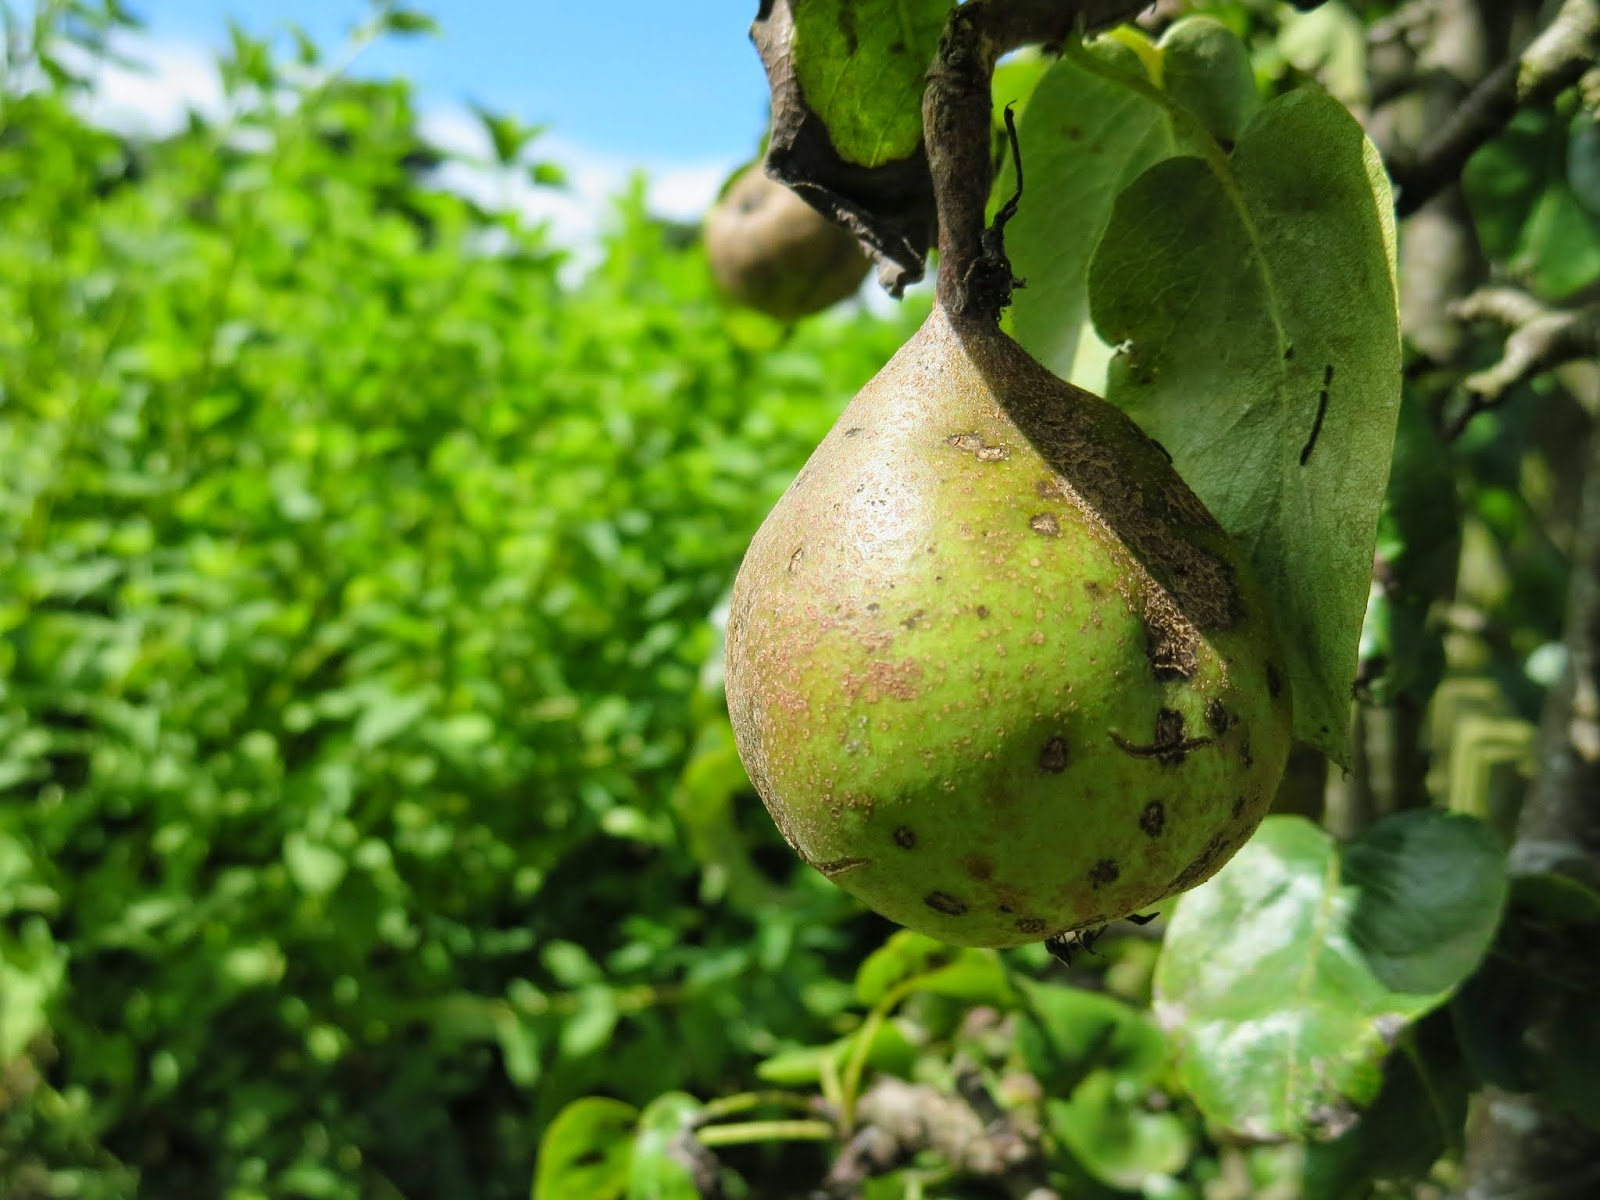 Pear plant in the walled garden at Marlay Park